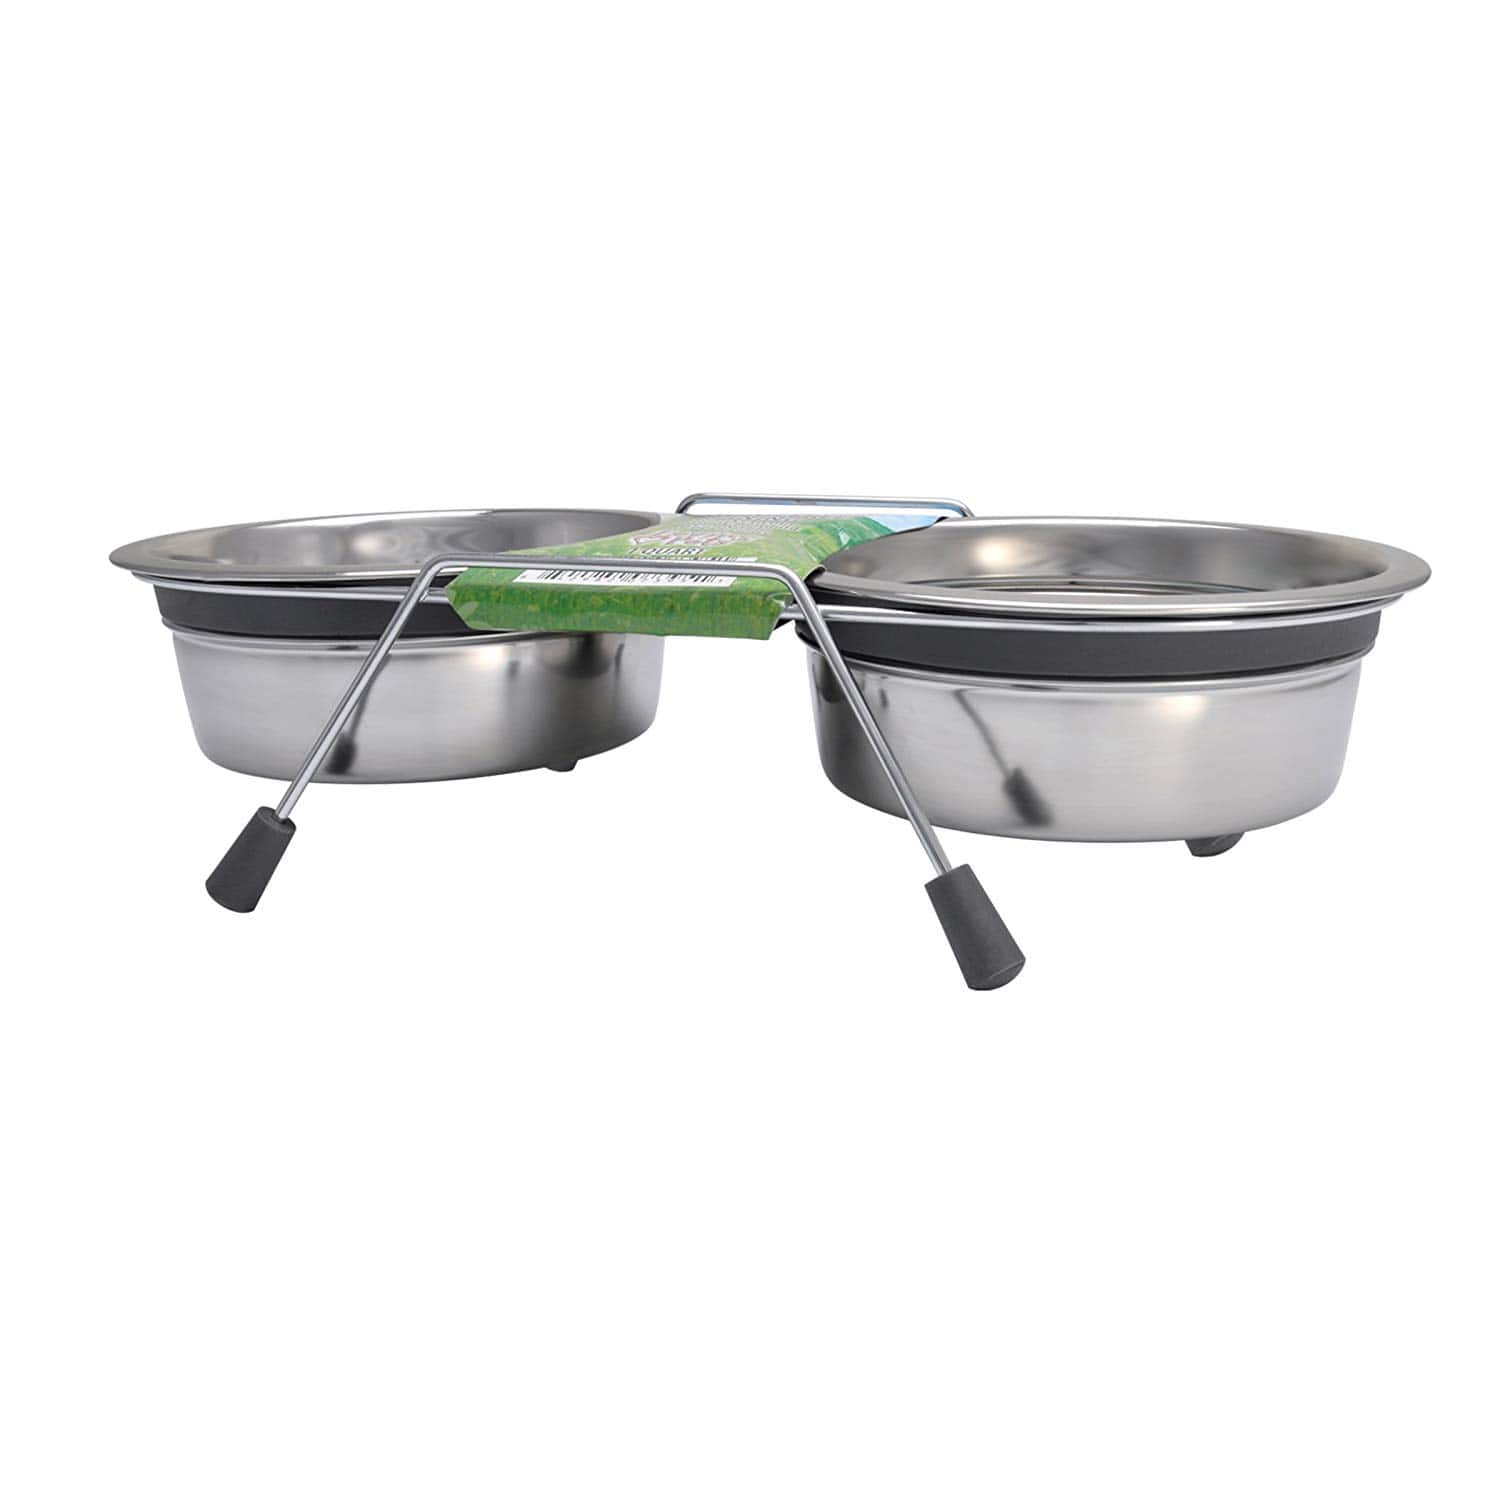 Loving Pets Silent Double Diner Stainless Steel Pet Bowl $2.04 FS w/ Prime